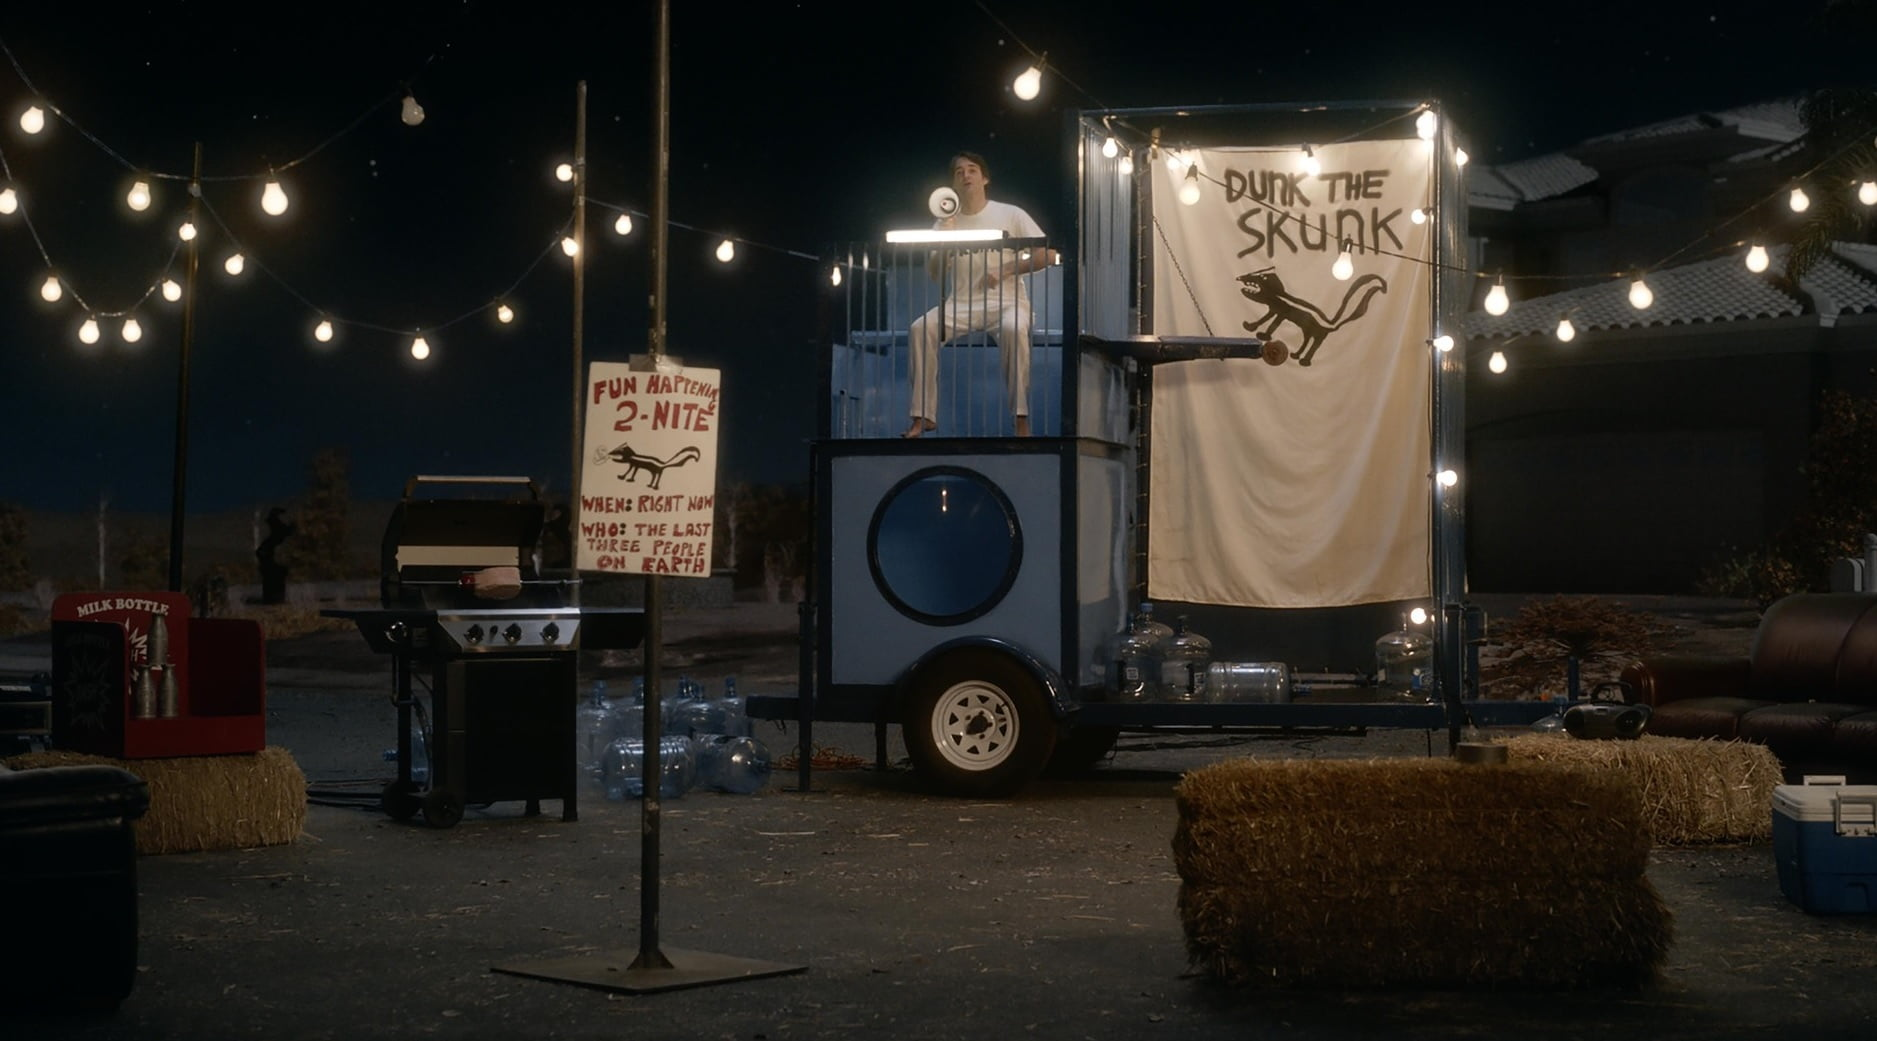 the-last-man-on-earth-filming-locations-dunk-the-skunk